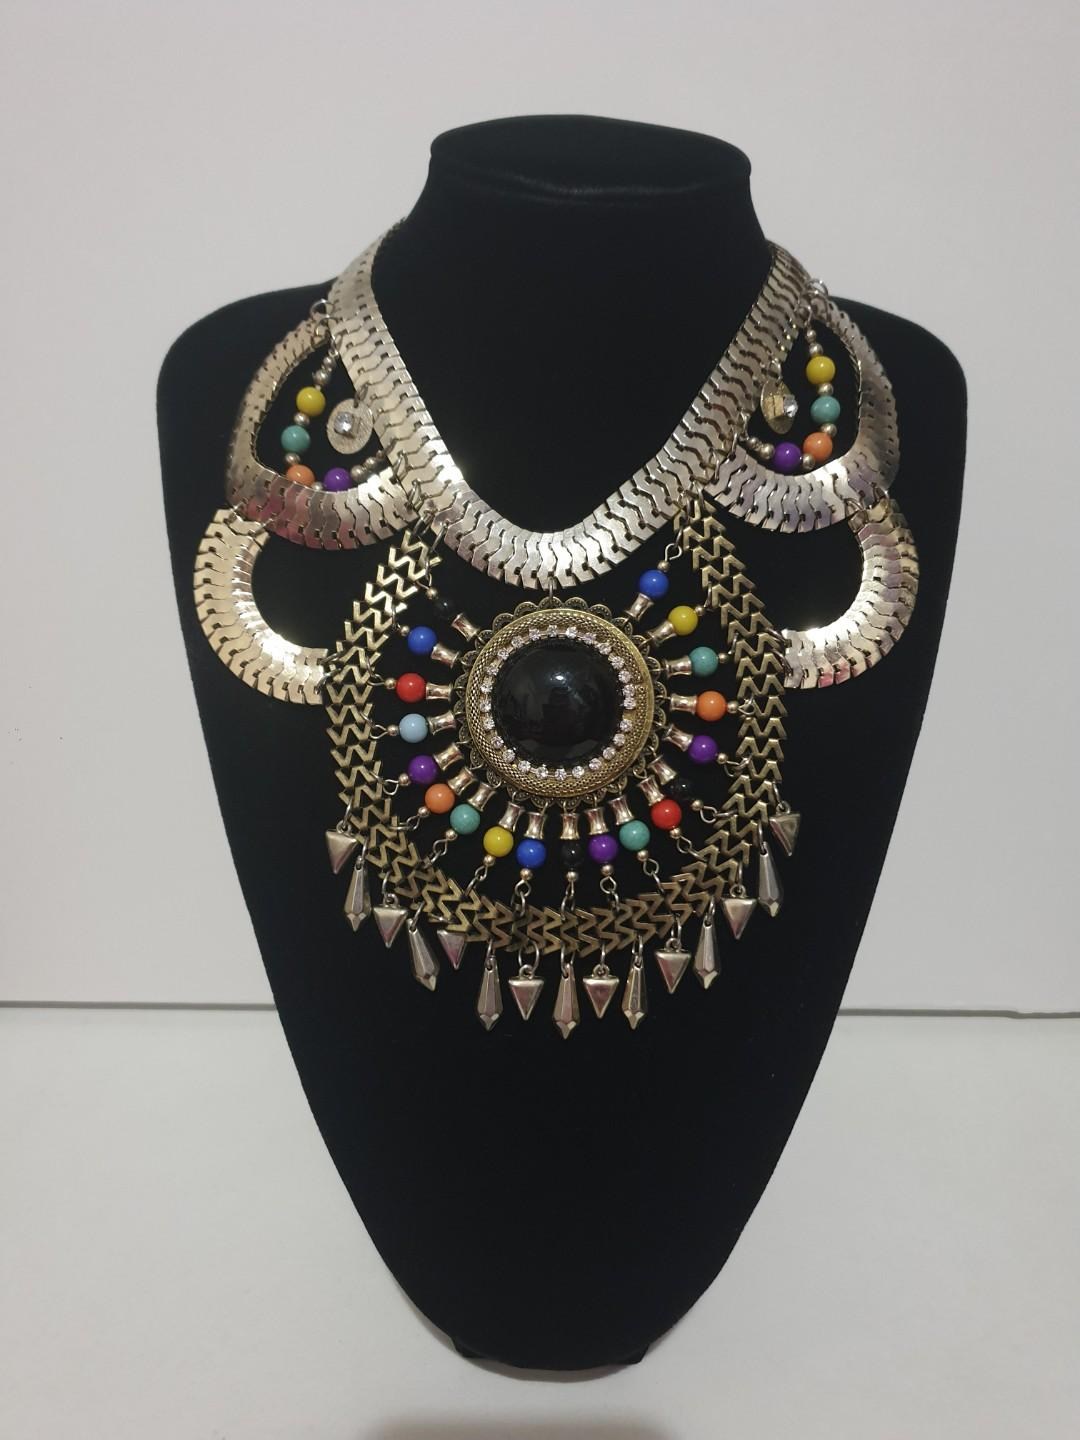 Stunning large chunky quality statement necklace stone and rhinestone